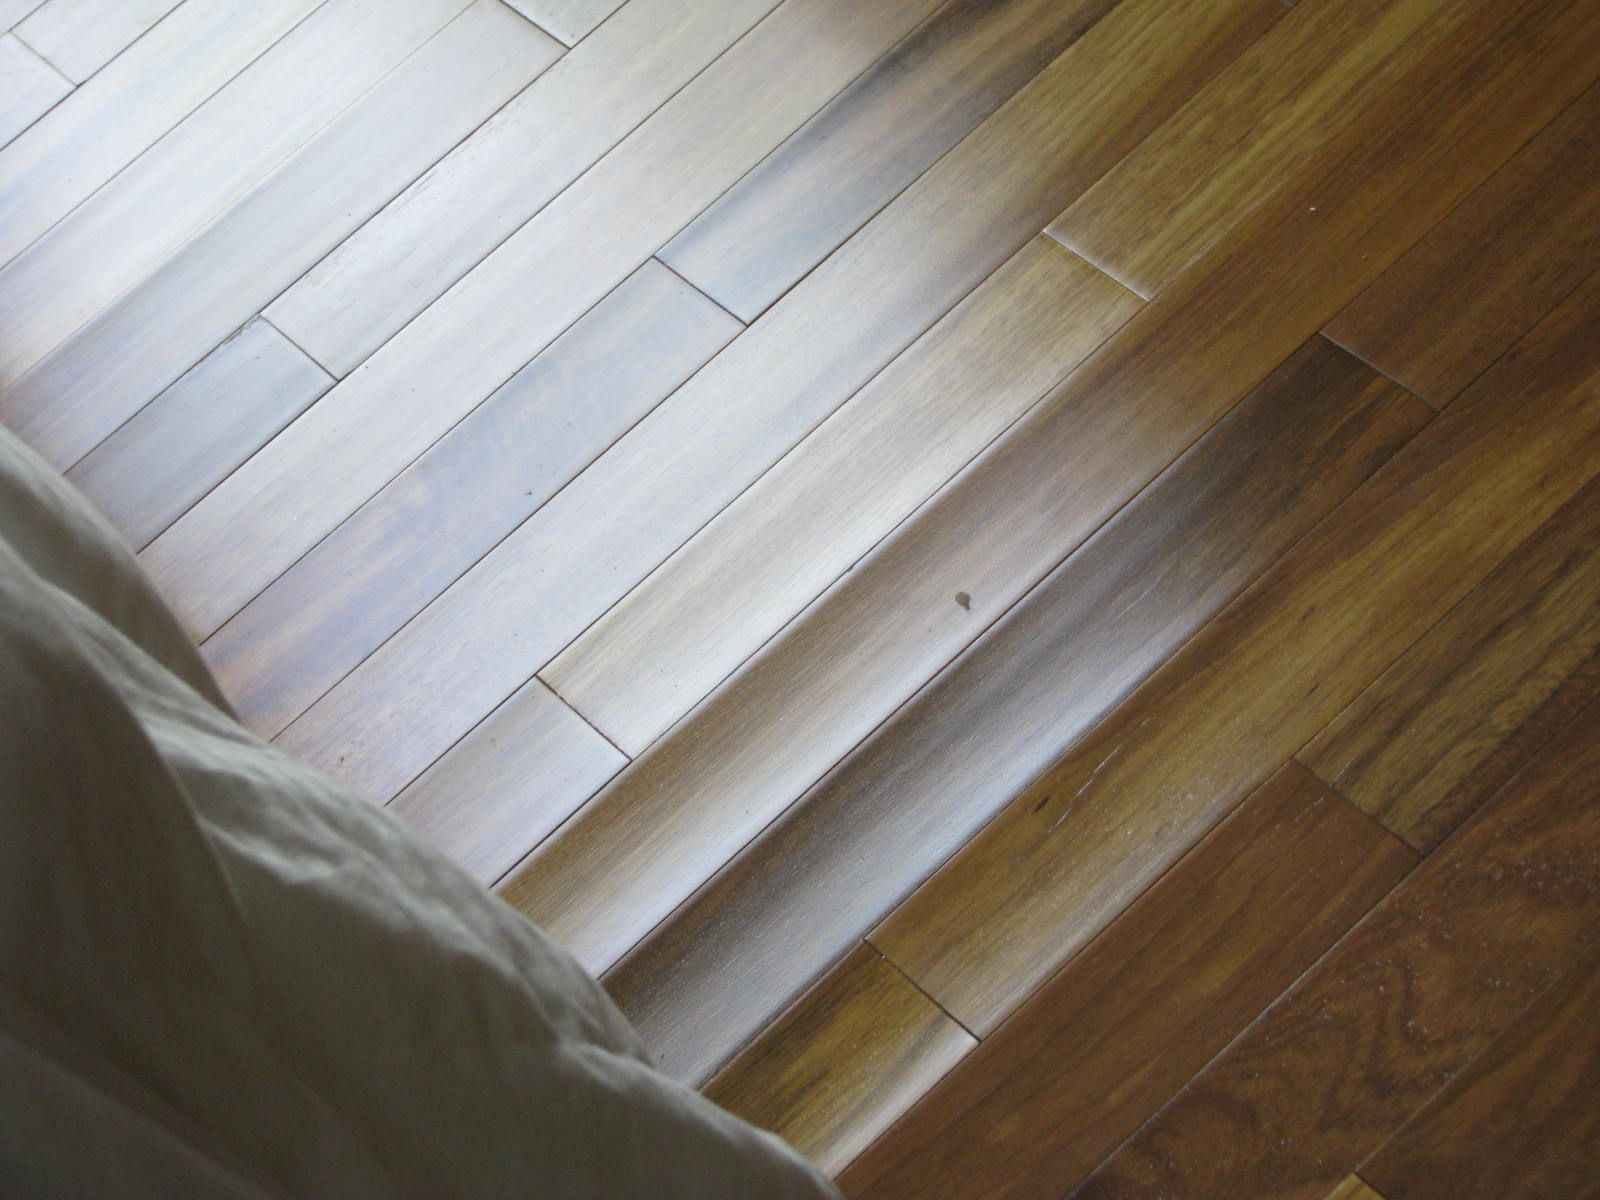 Moisture Problems In Wood Flooring Flooring Tips